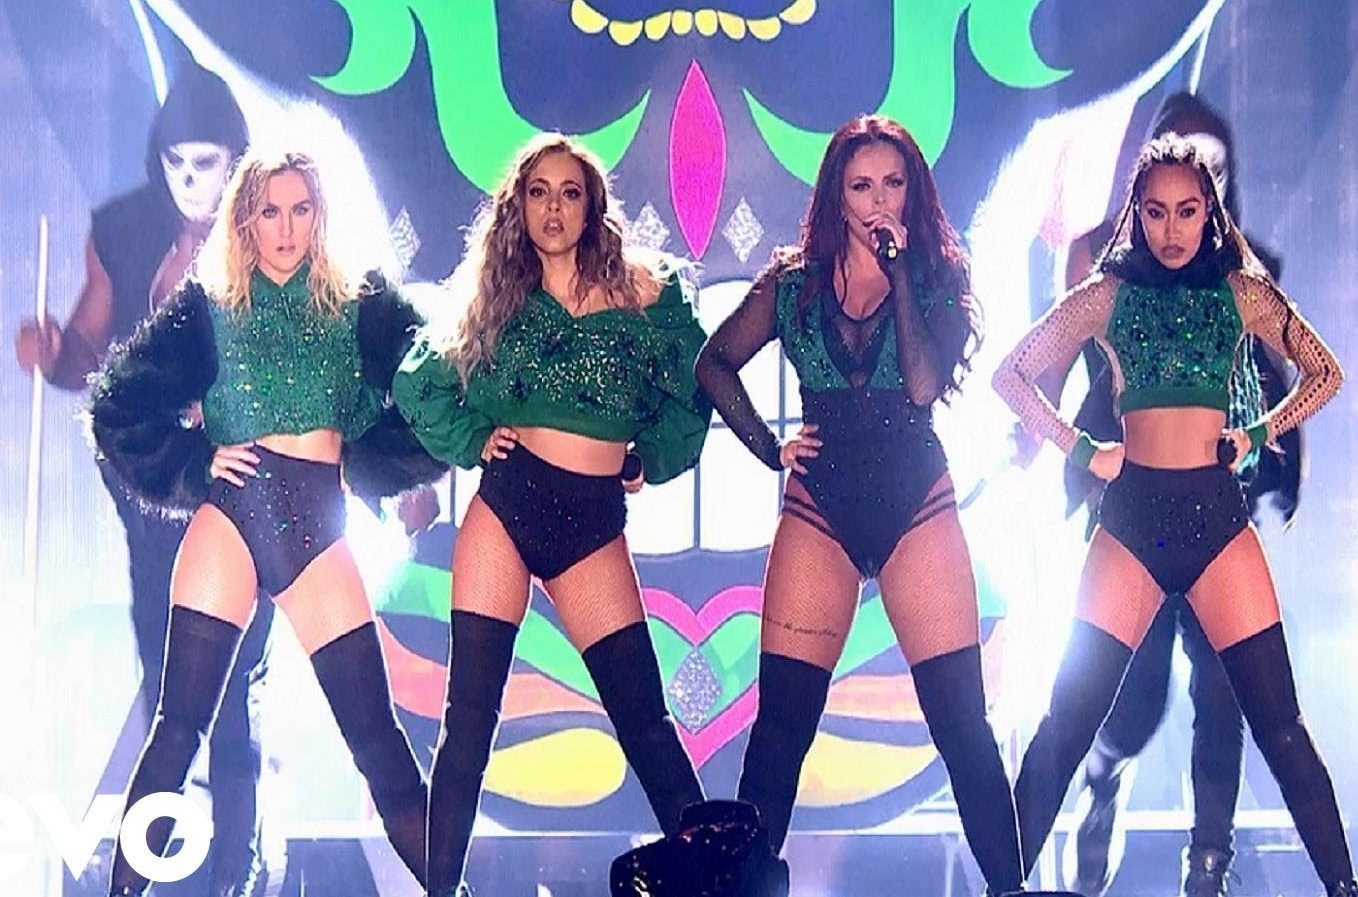 Little Mix will perform at Slessor Gardens later this month.